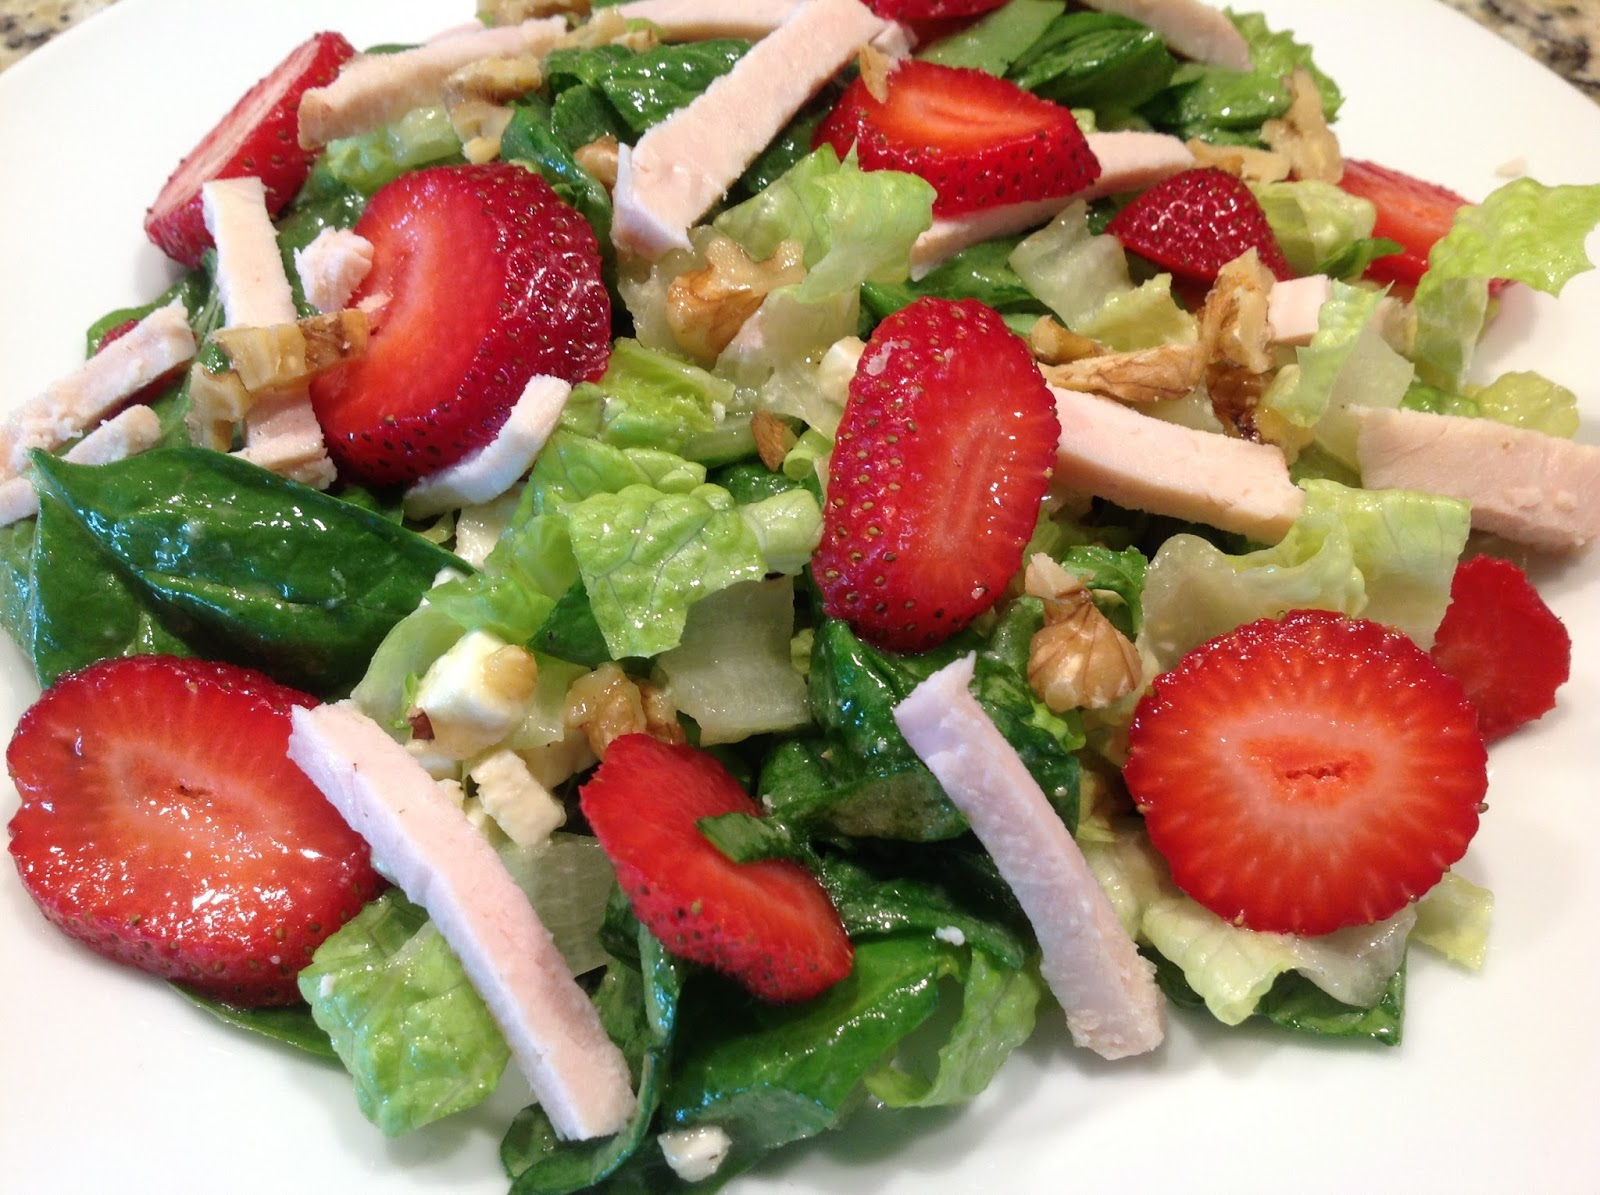 Dawn's Recipes: Strawberry, Chicken and Feta Salad